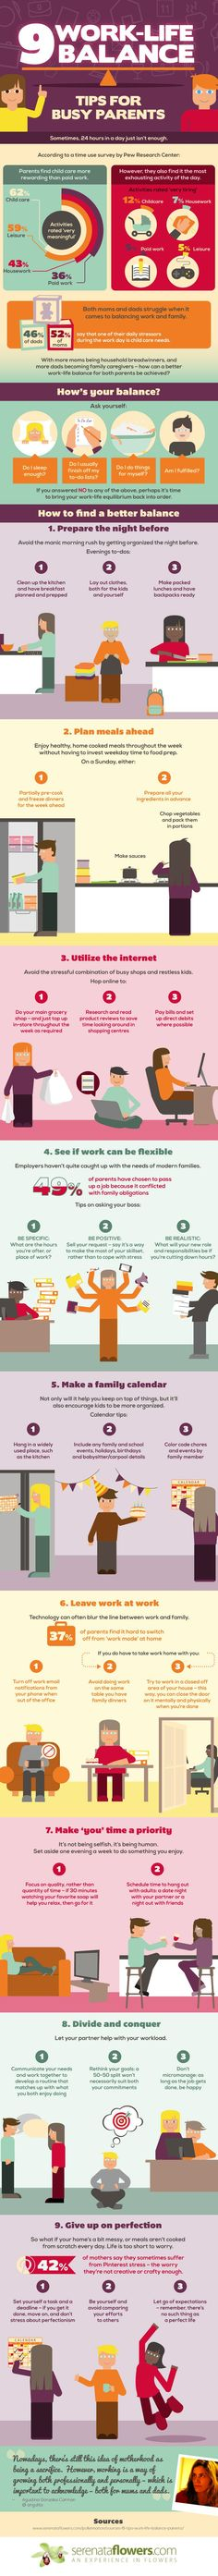 9 Work-Life Balance Tips for Busy Working Parents(Infographic) (scheduled via http://www.tailwindapp.com?utm_source=pinterest&utm_medium=twpin&utm_content=post84011039&utm_campaign=scheduler_attribution)